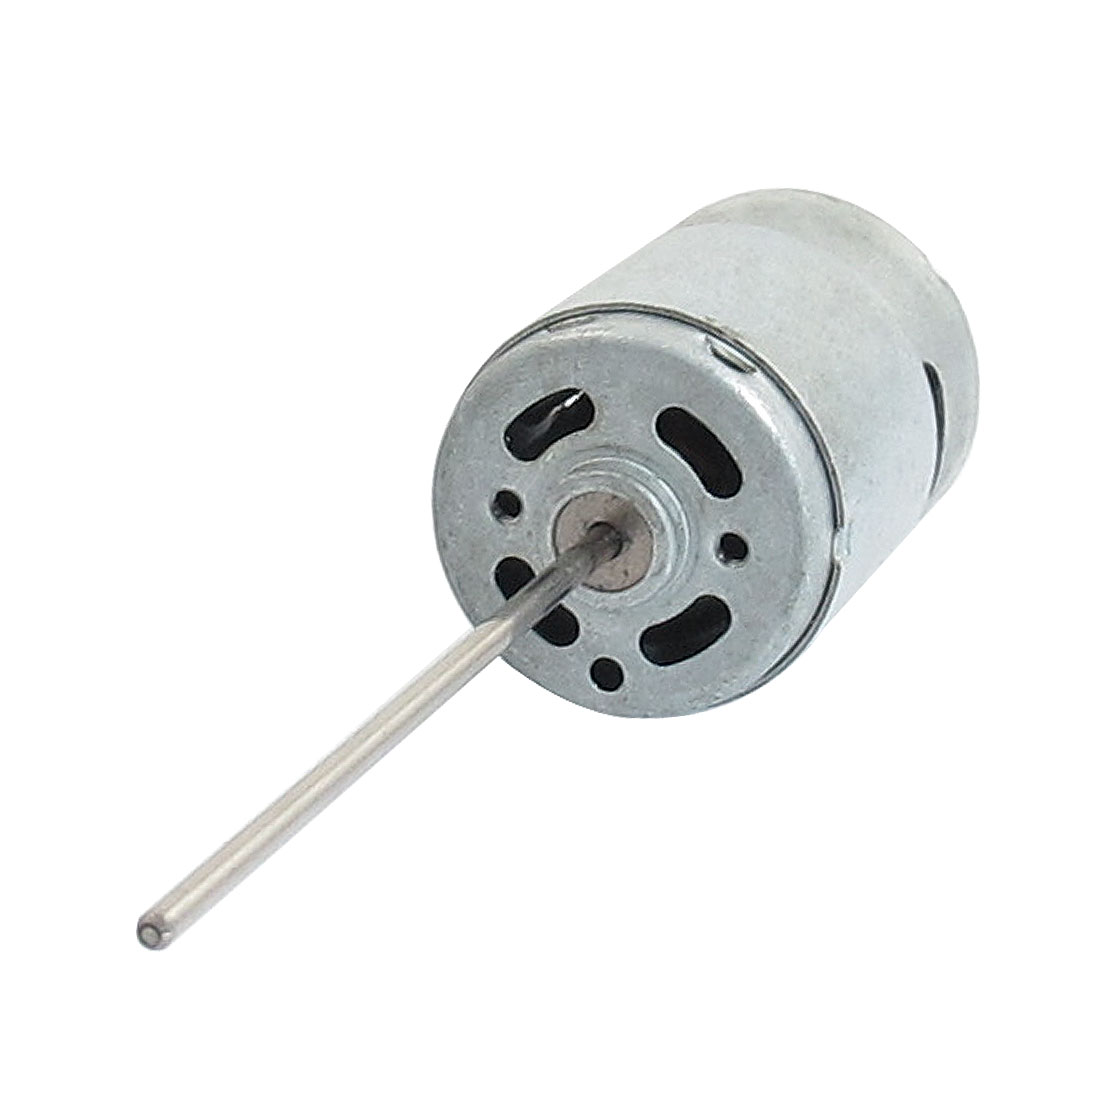 12V-5300RPM-2-Pin-Connector-Permanent-Magnet-Micro-DC-Motor